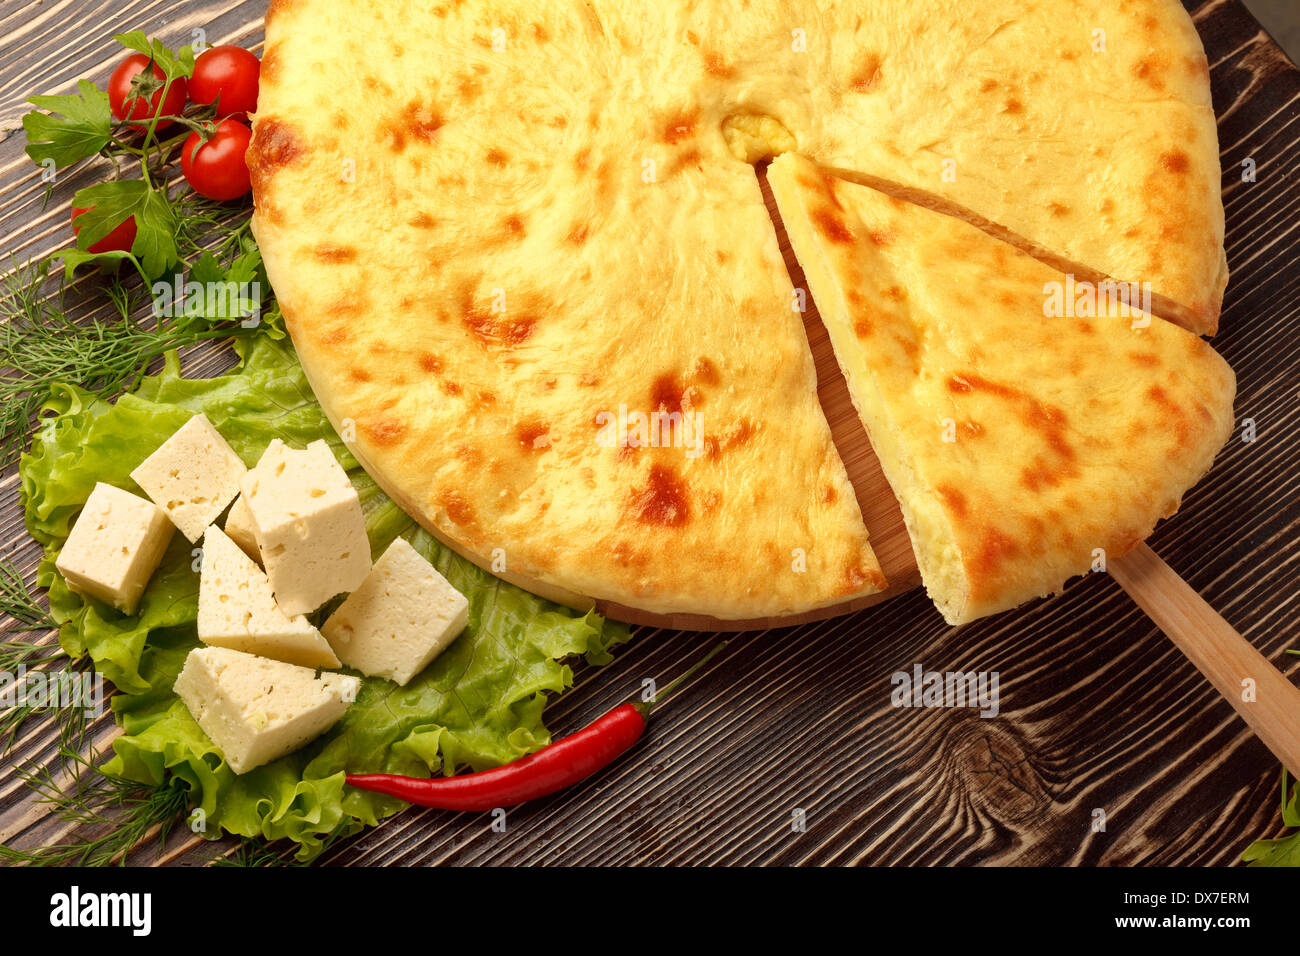 Traditional Ossetian feta cheese pie still life. - Stock Image